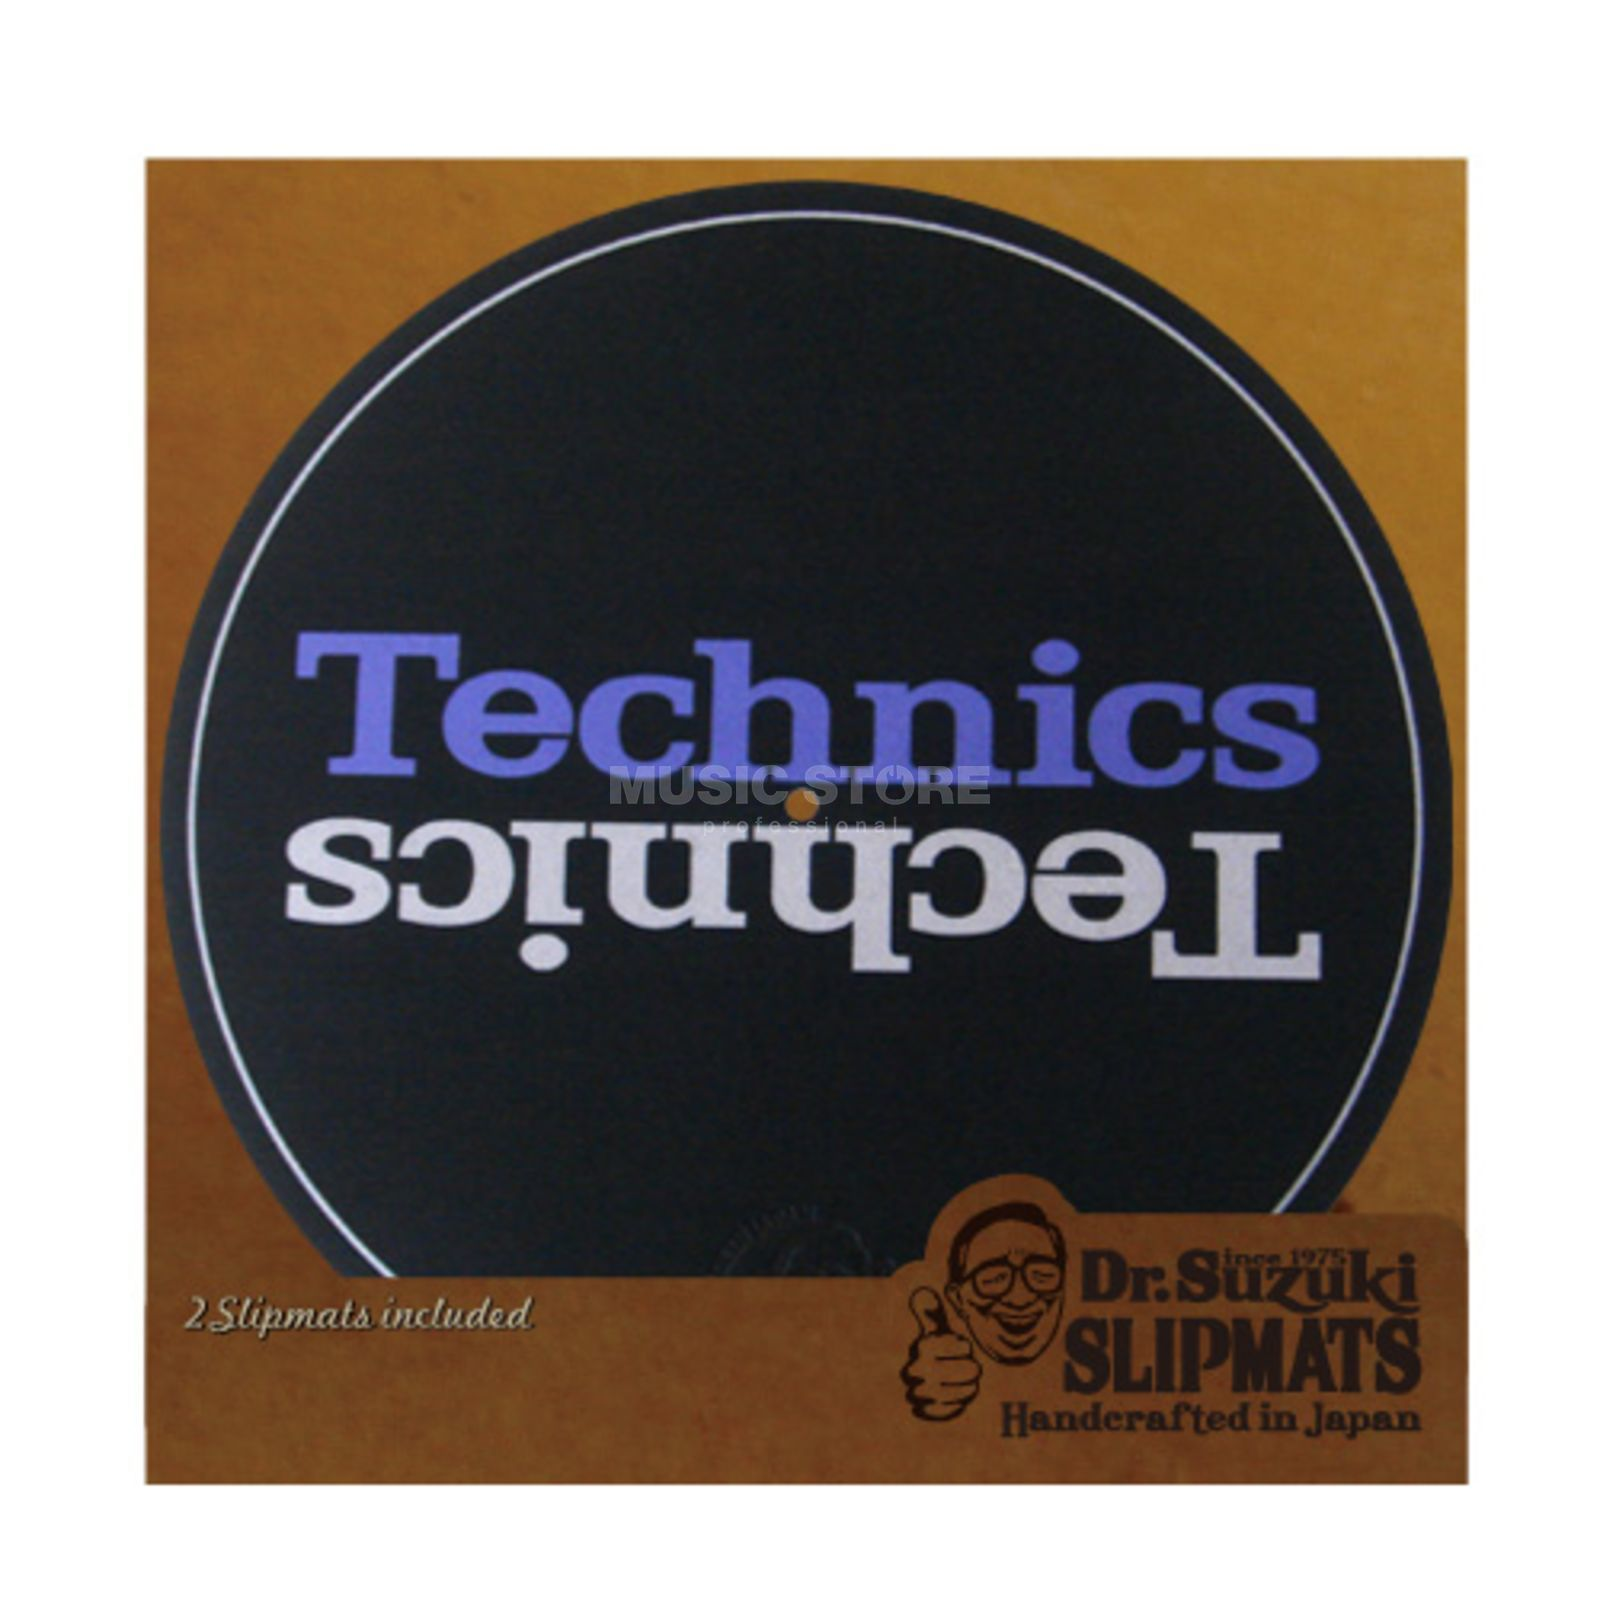 Tablecloth Dr.Suzuki Mix Edition Slipmats Technics (paire) Image du produit